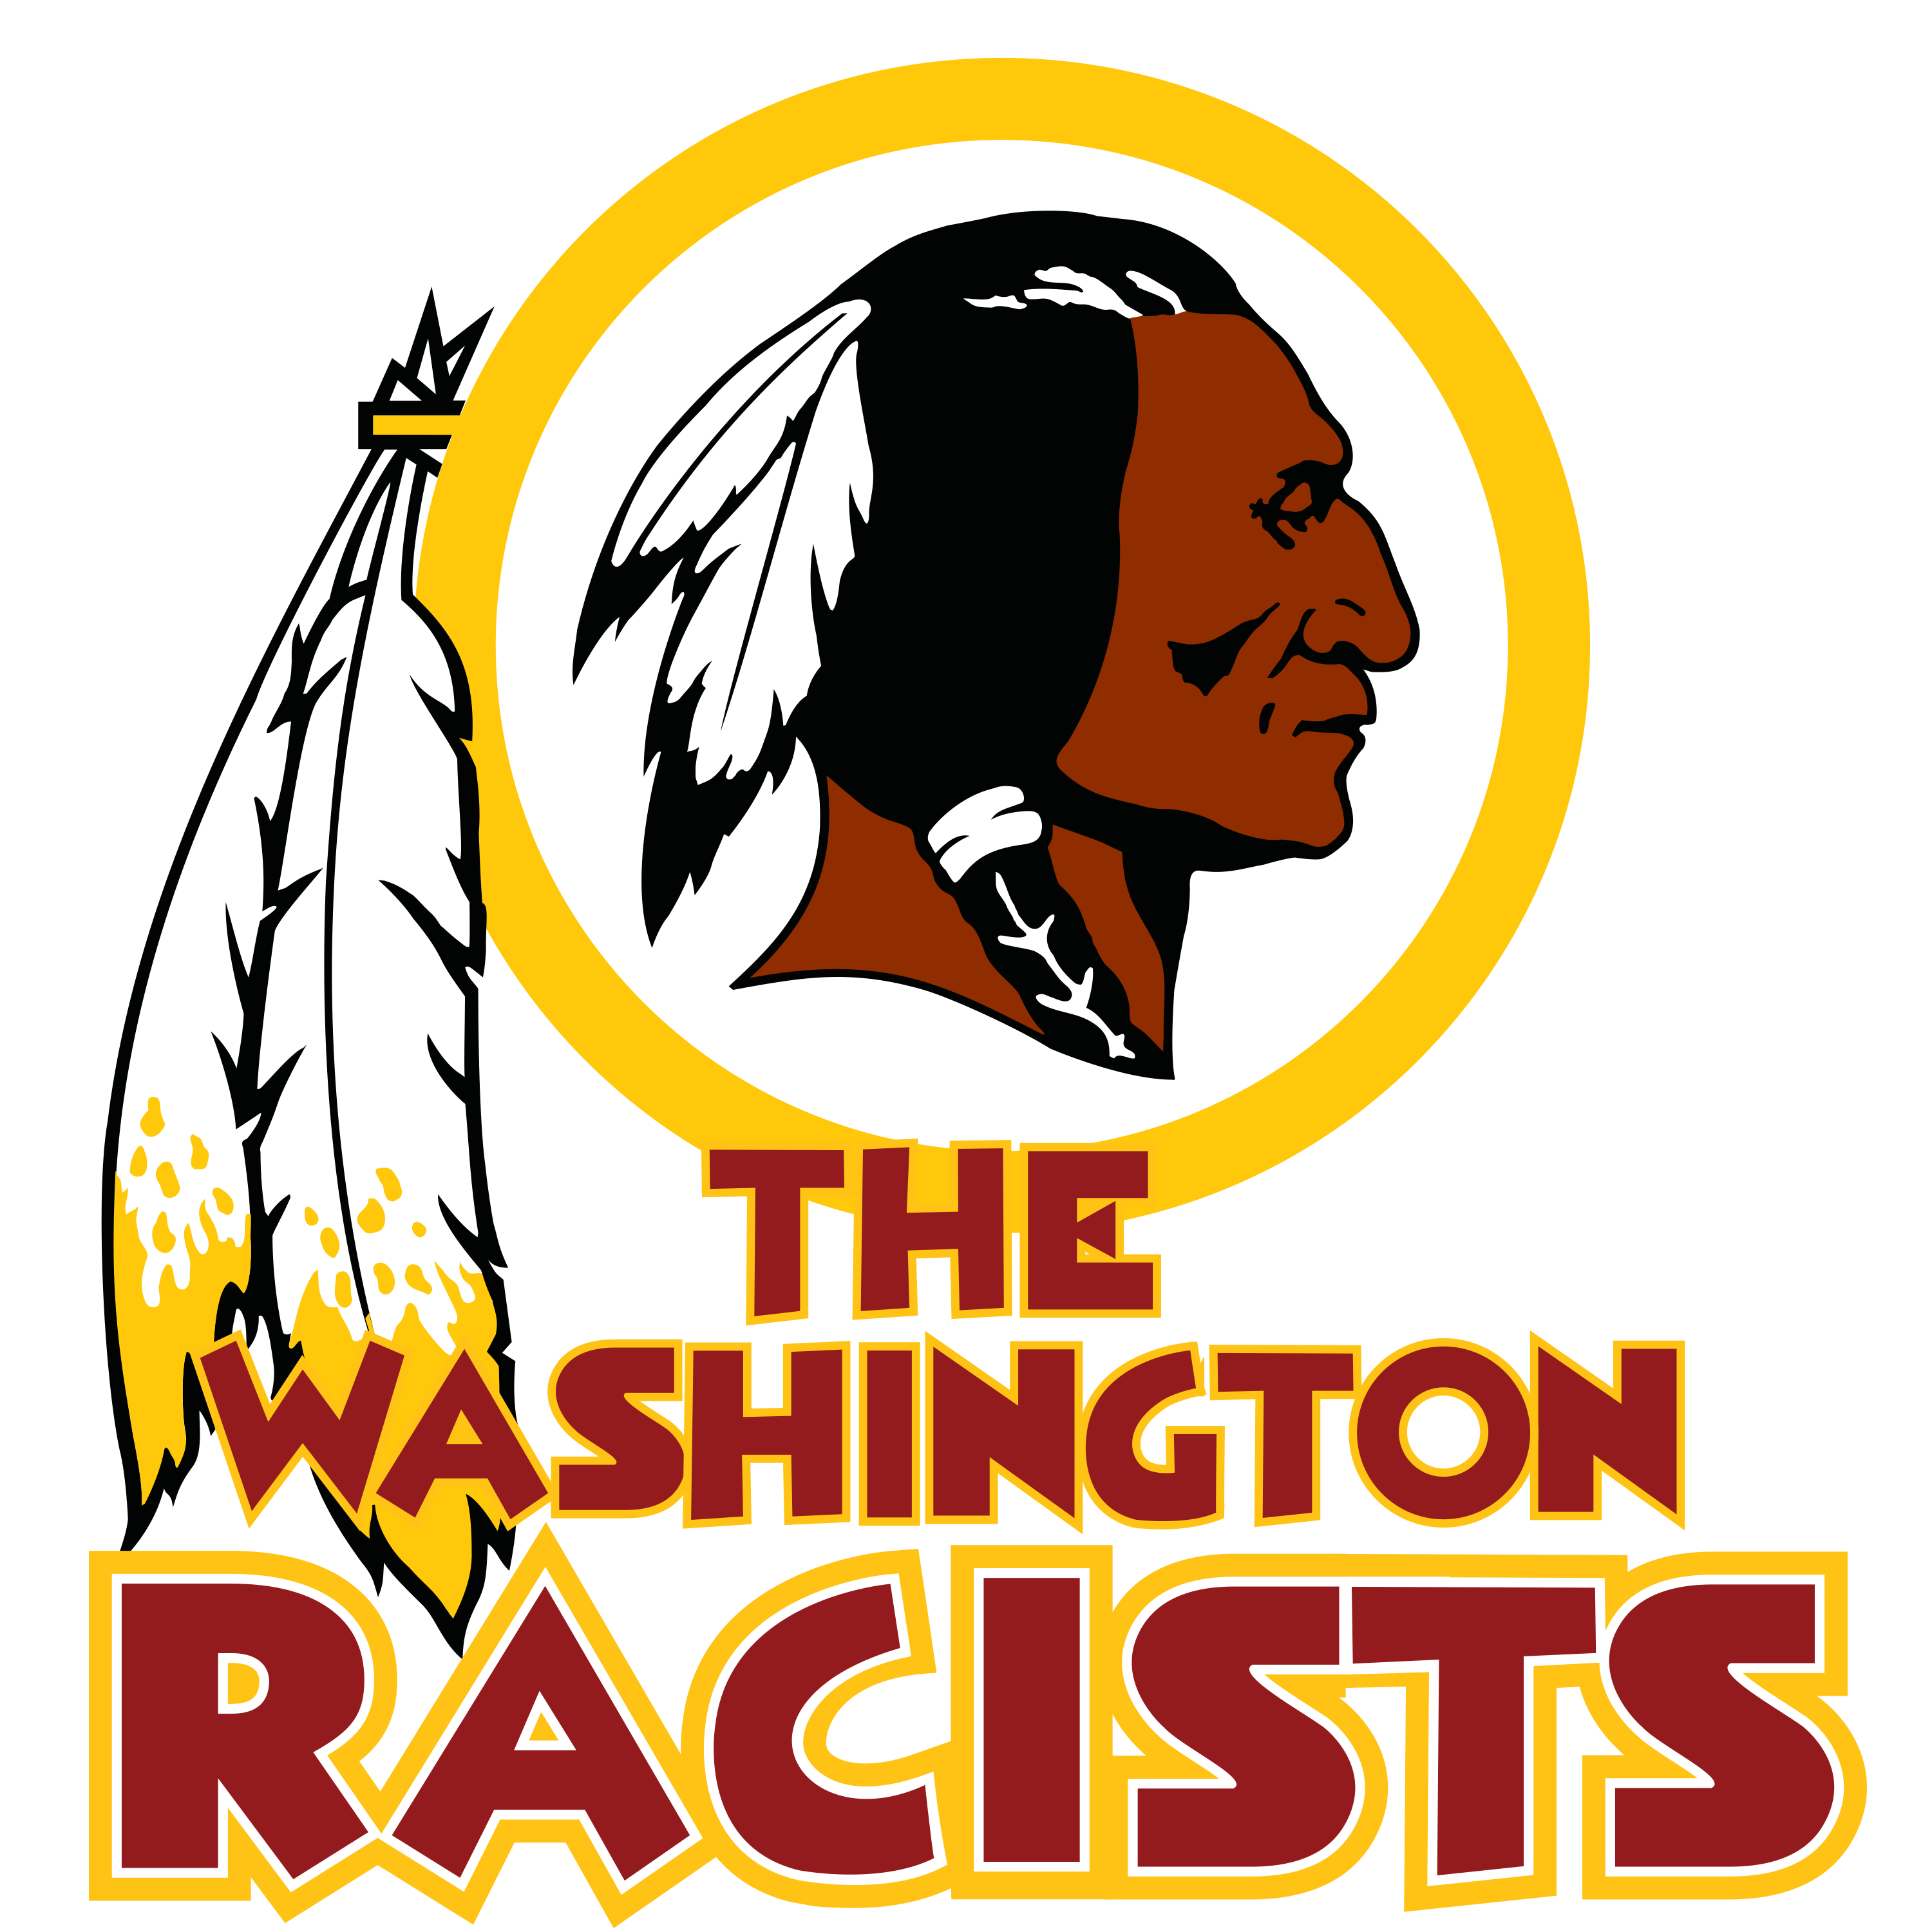 Free Washington Redskins PNG Transparent Images, Download.